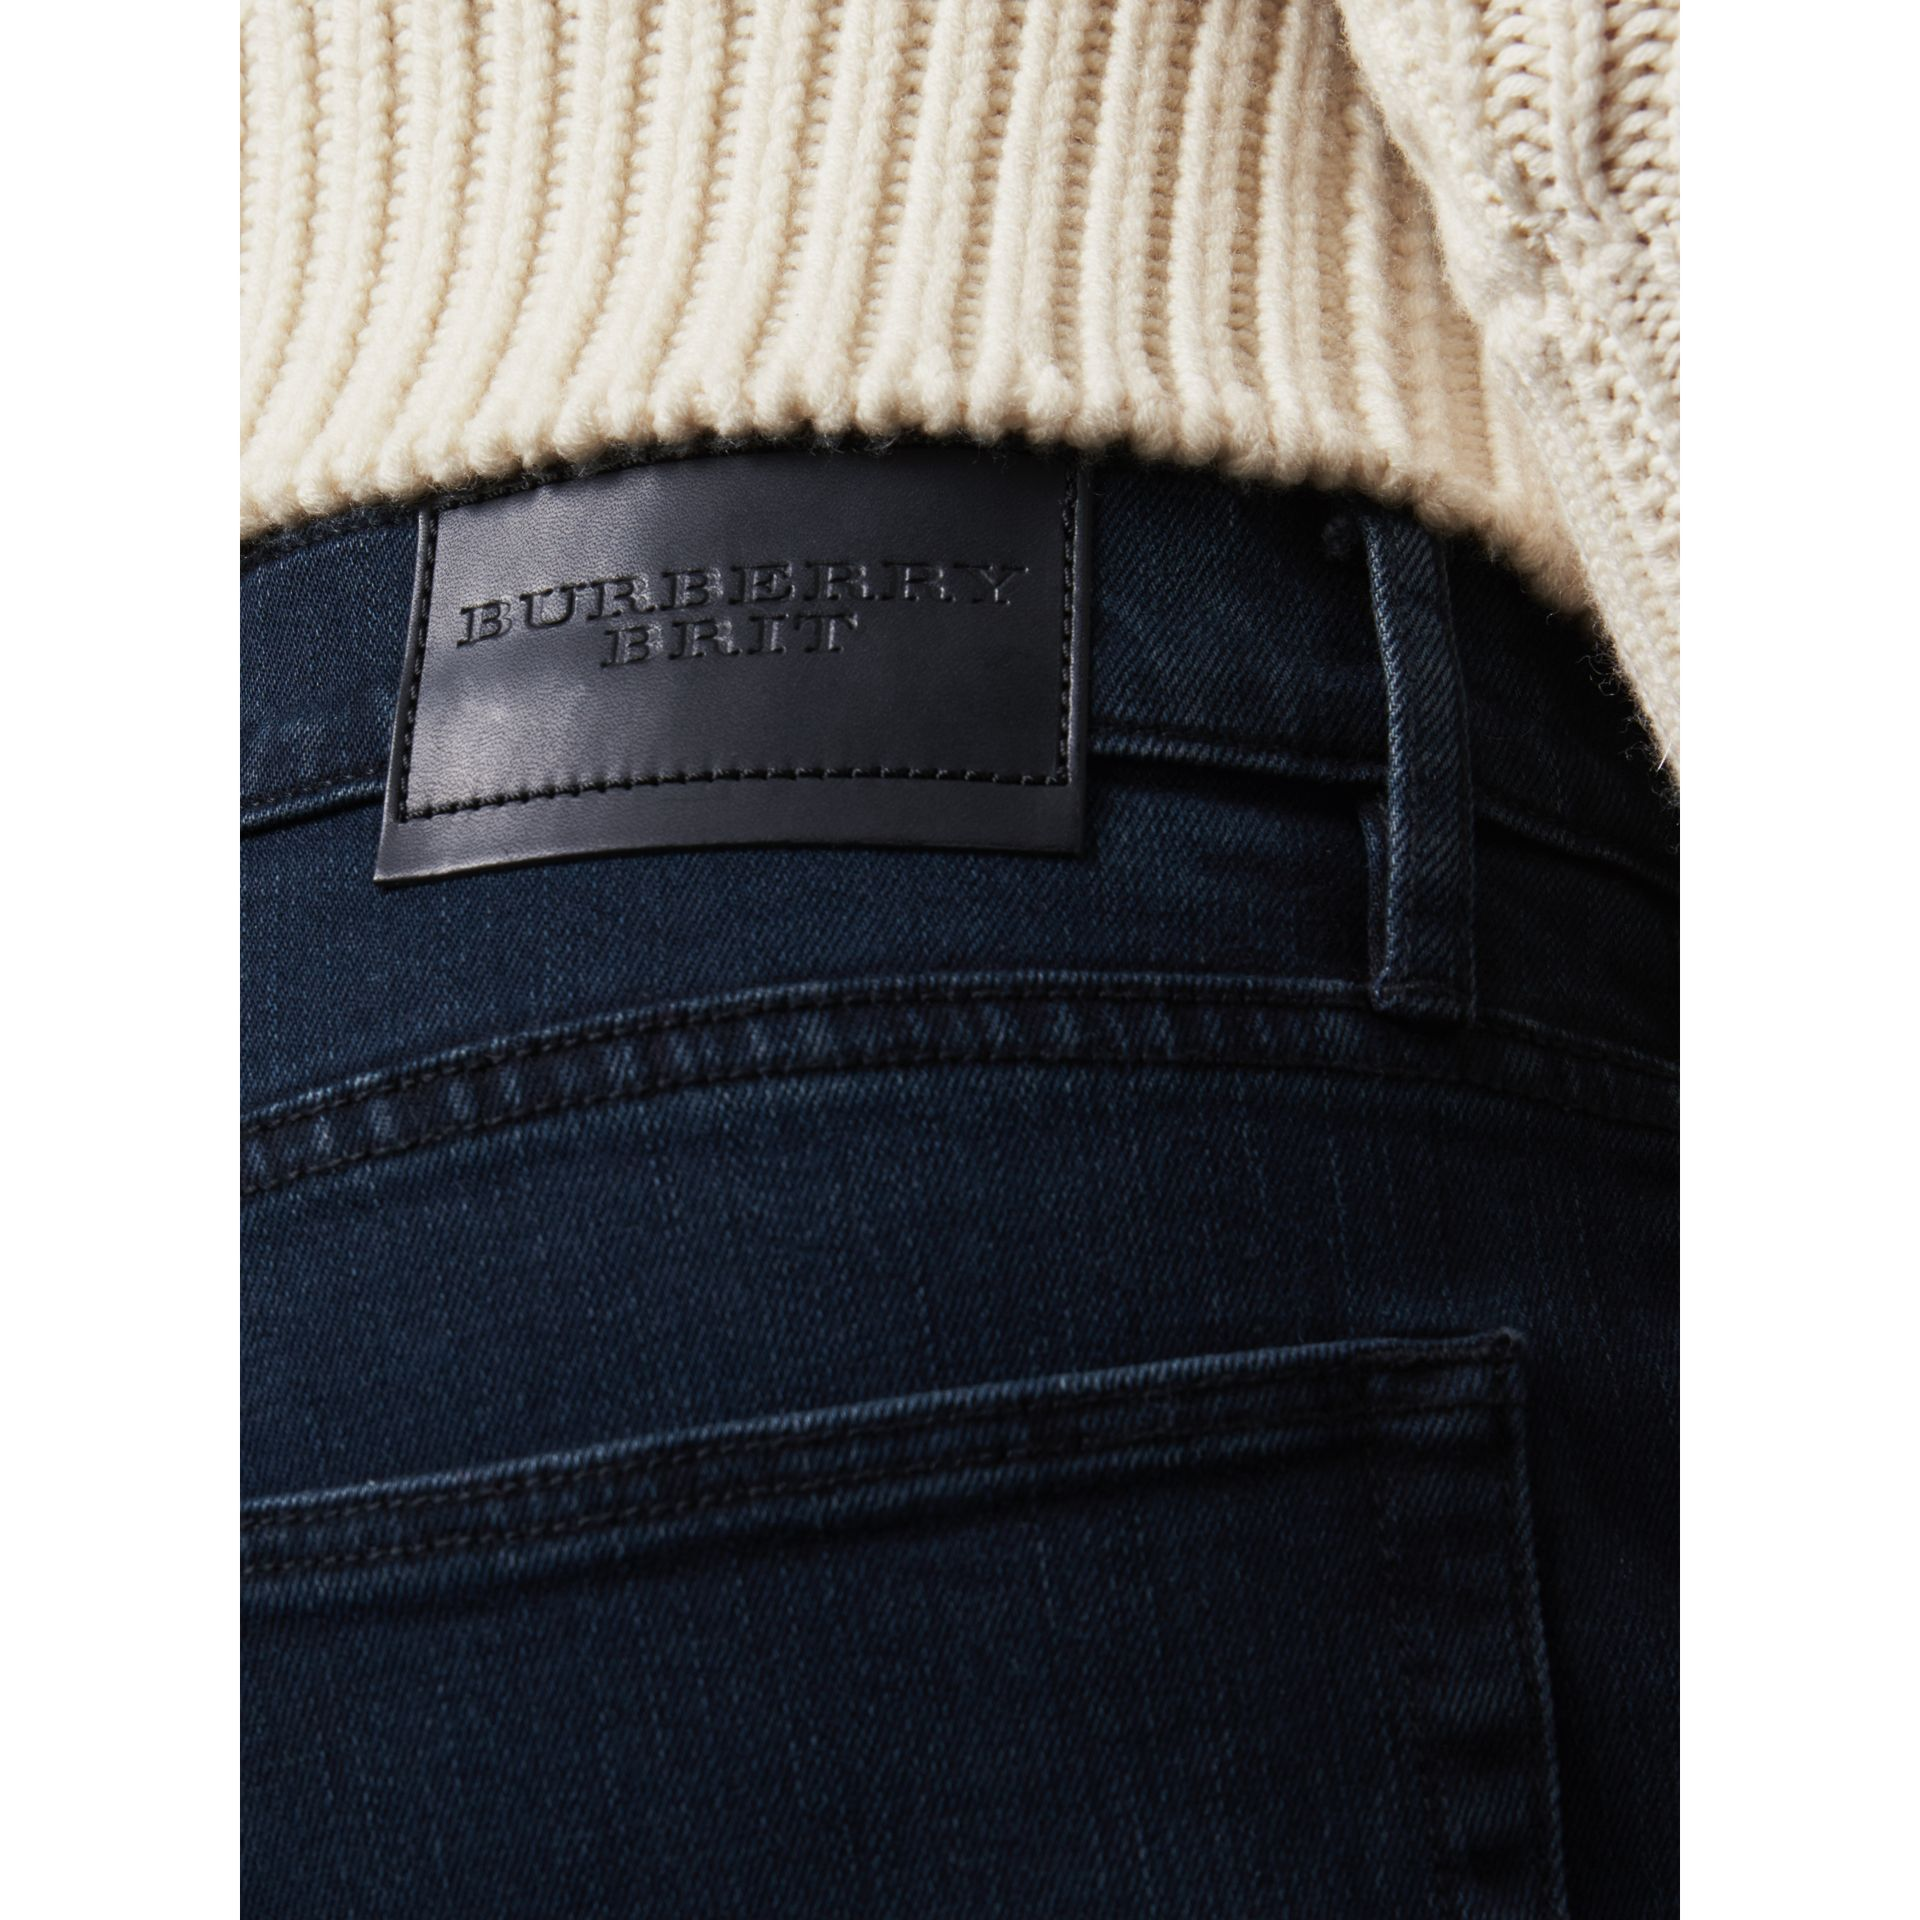 Straight Fit Stretch Denim Jeans in Dark Indigo - Men | Burberry Australia - gallery image 1